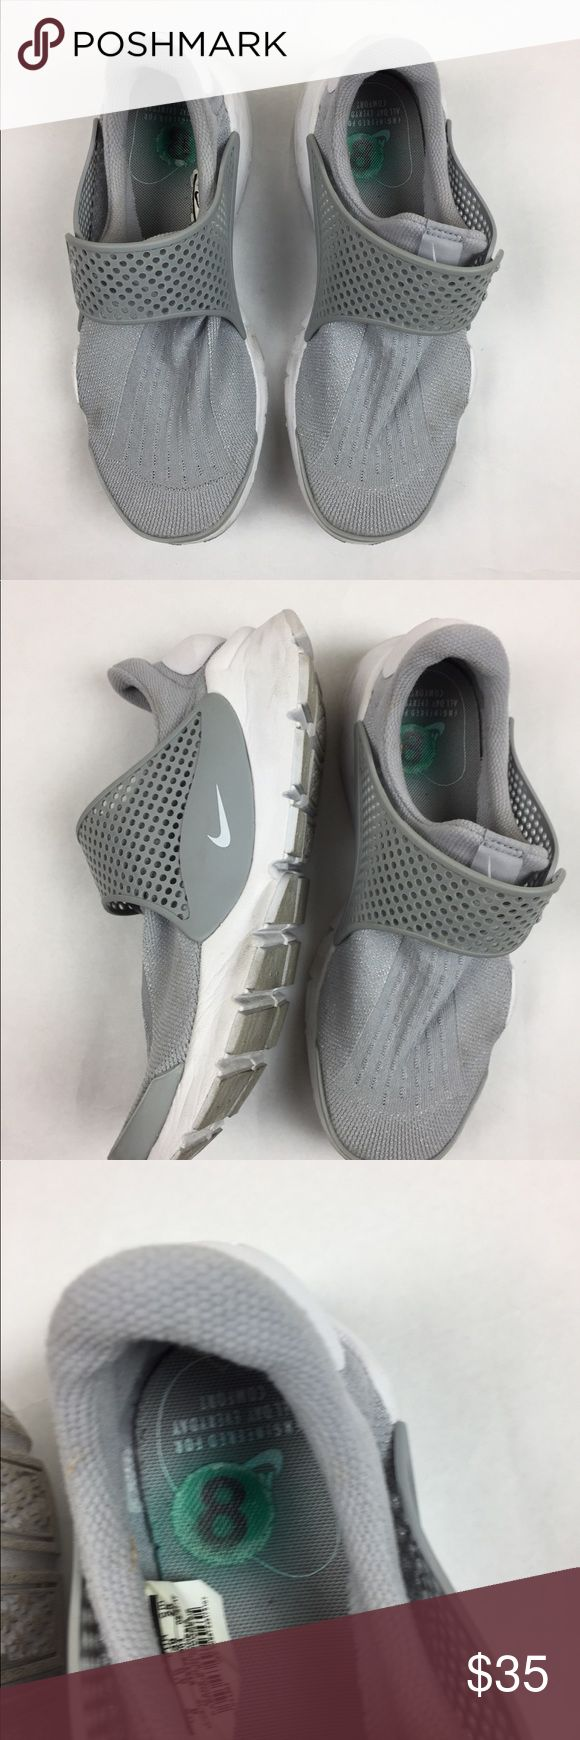 Nike Gray Athletic Shoes Size 8 Worn for one day Nike Shoes